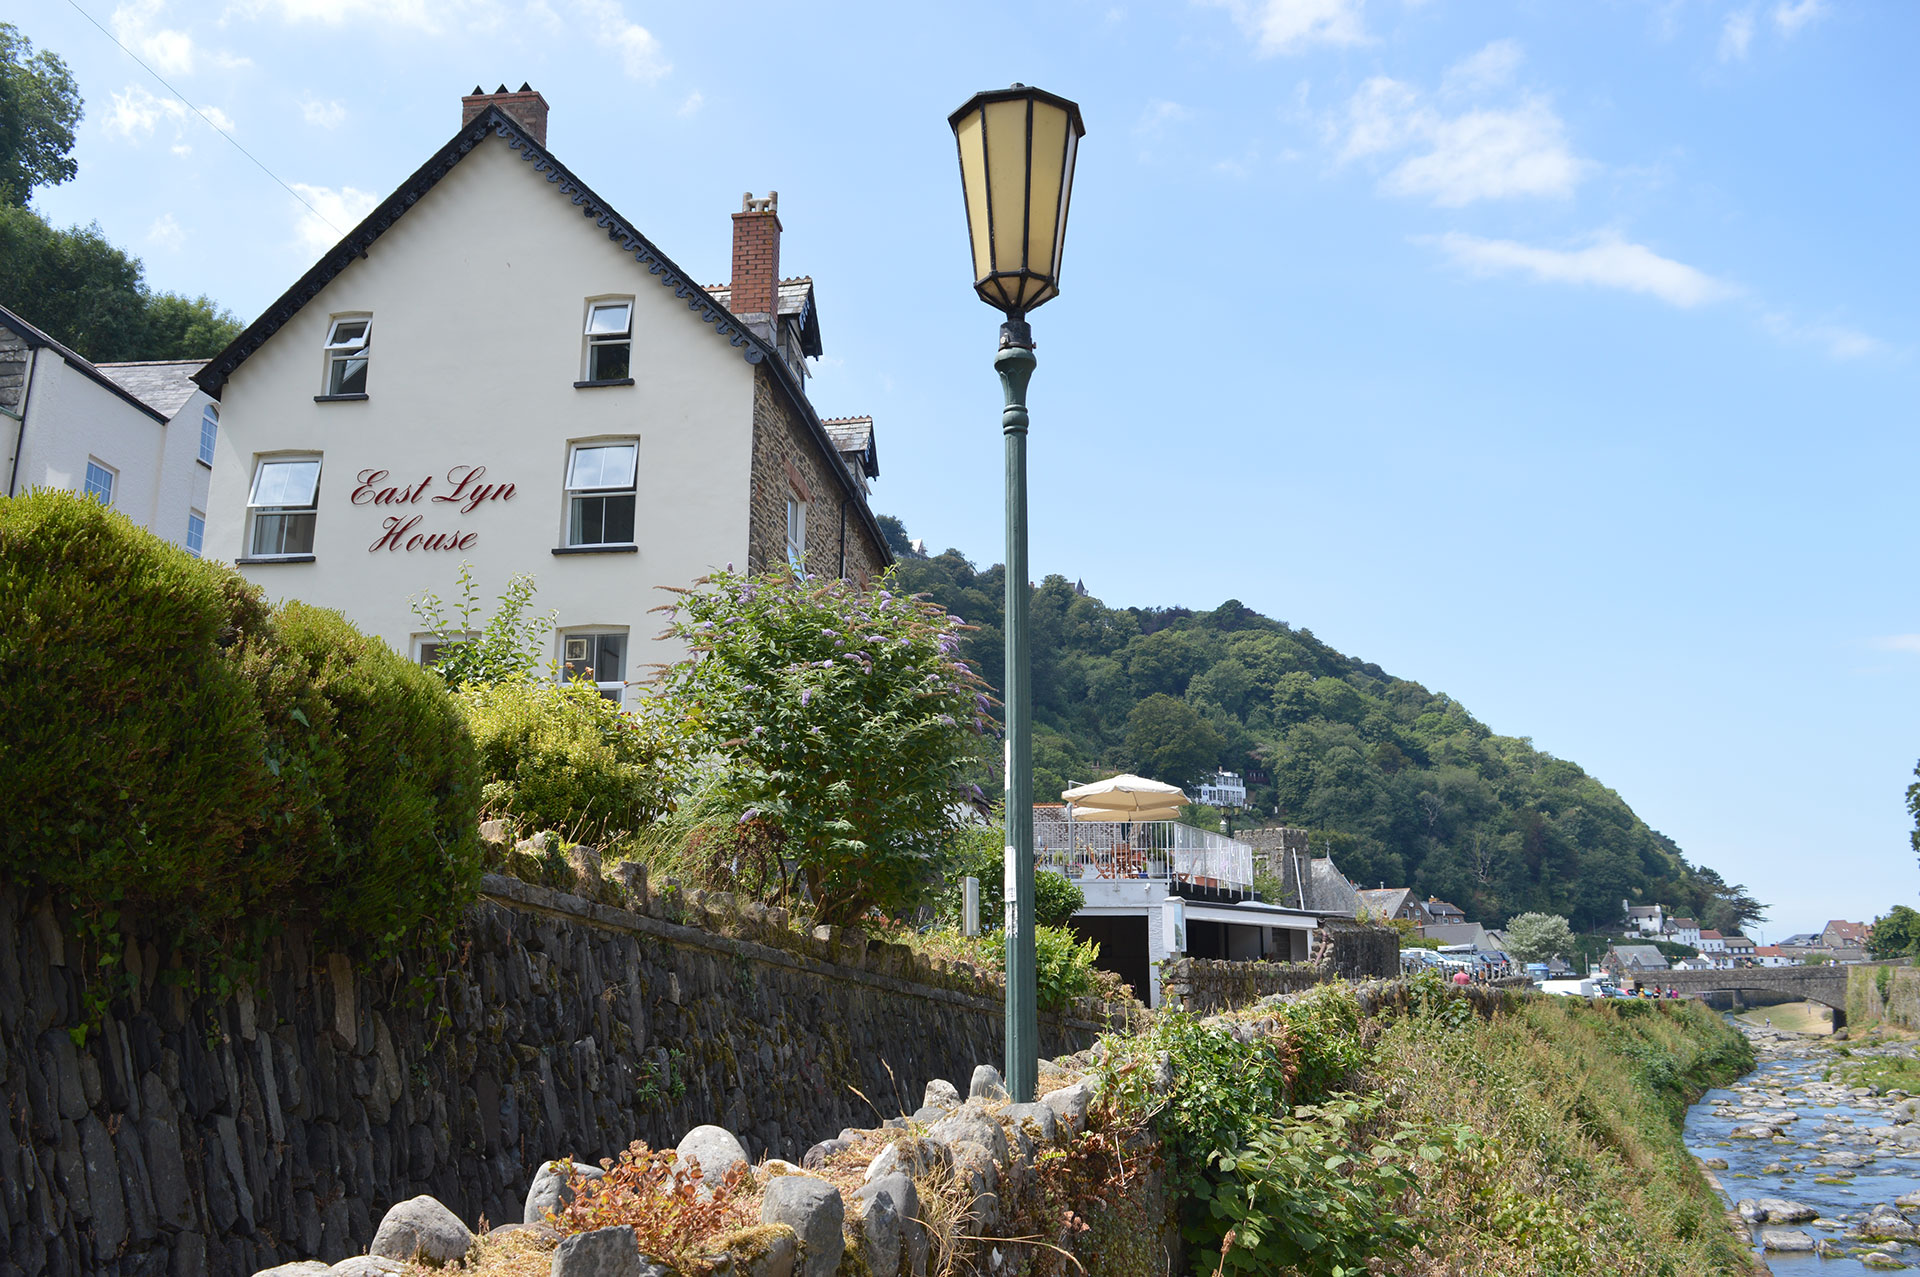 East Lyn House, Bed and Breakfast. Lynmouth, Devon